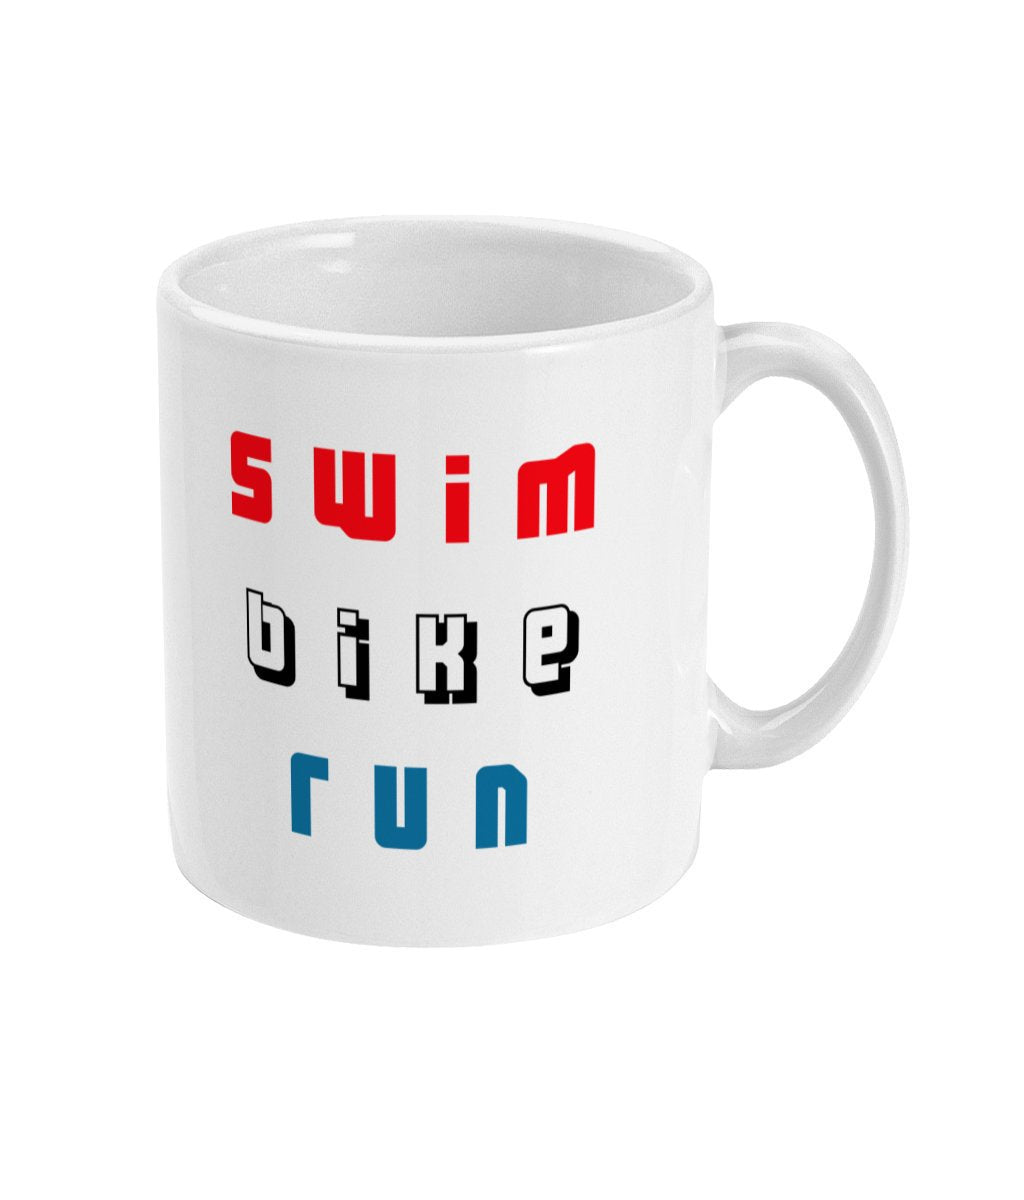 Swim Bike Run Triathlon Mug - Track and Fit Club